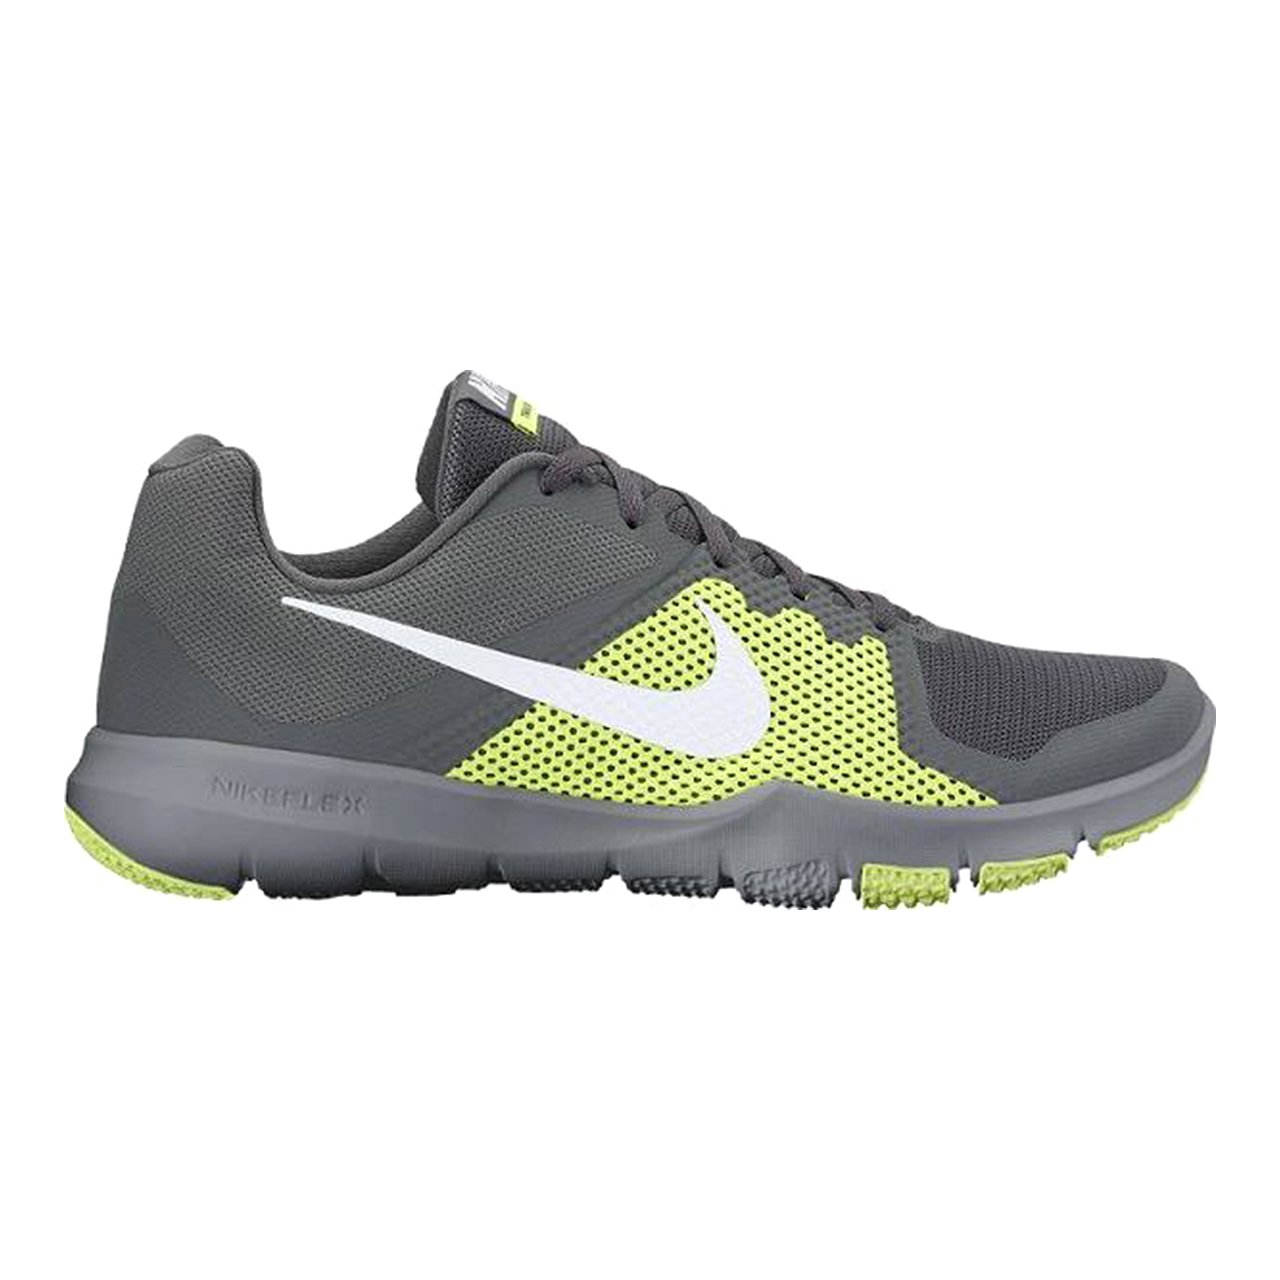 761a075e1861 Nike Flex Control Men s Grey Running Shoes (UK-11) (US-12)  Buy Online at  Low Prices in India - Amazon.in